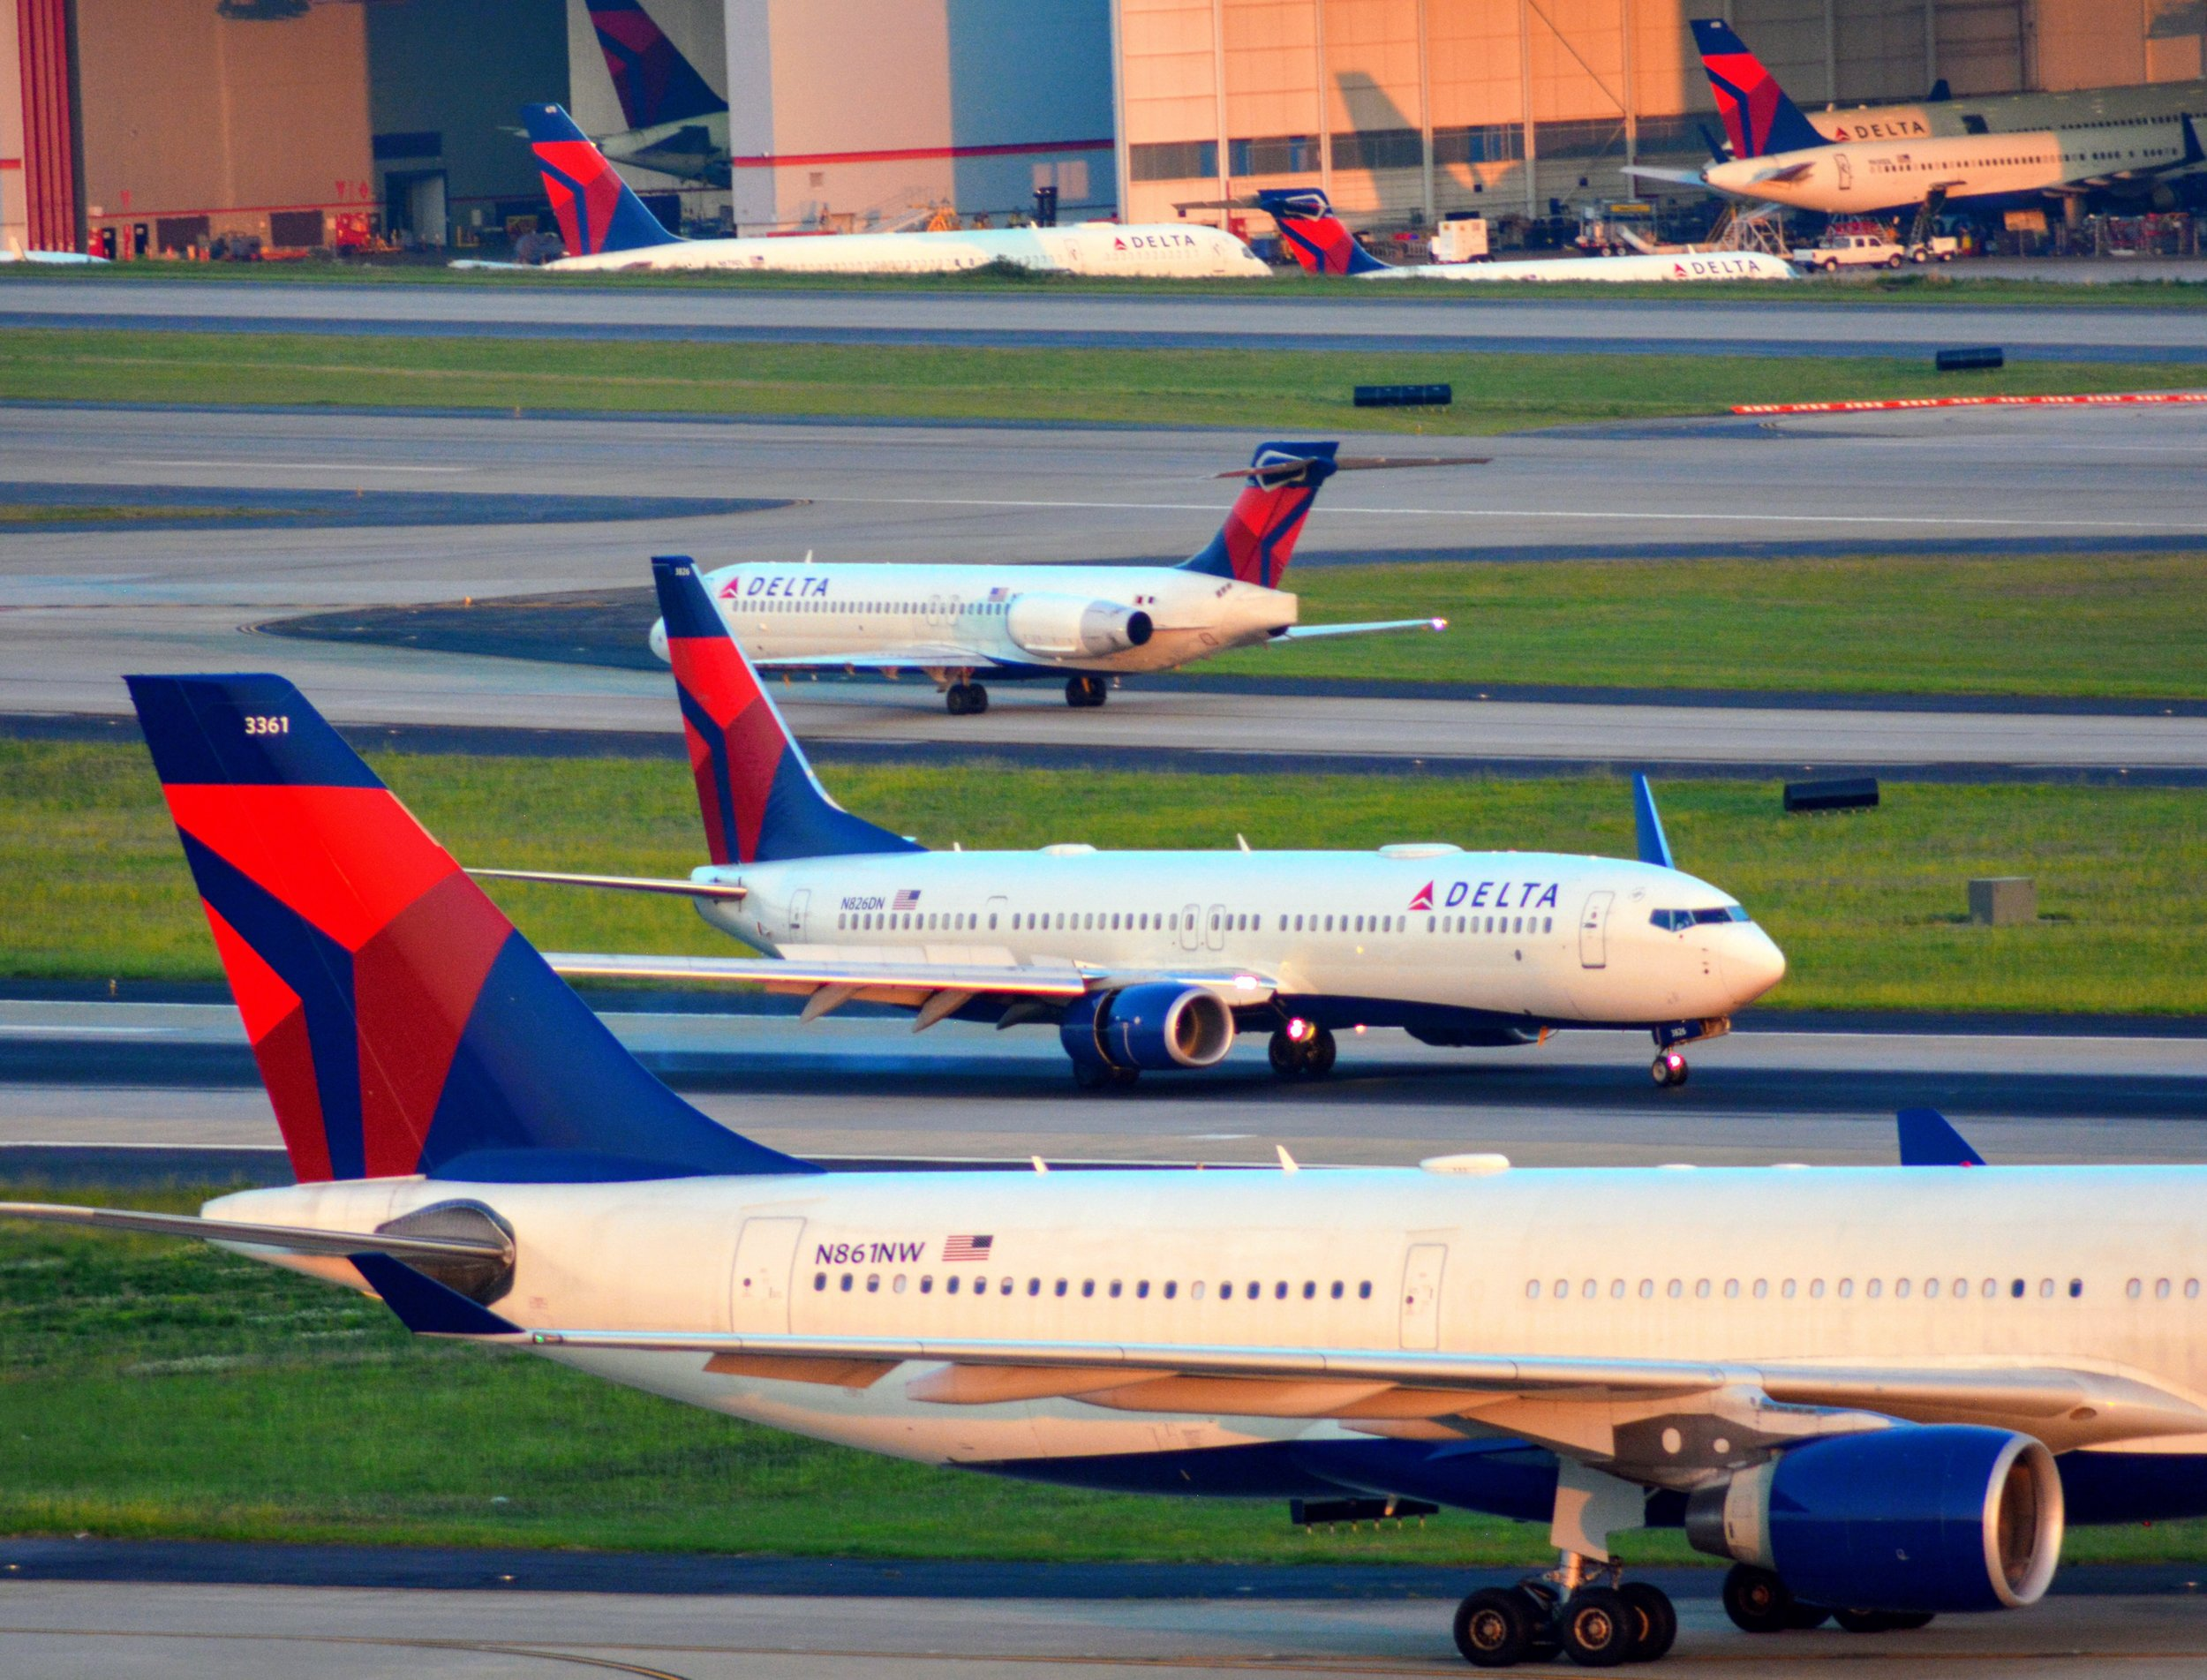 AIRCRAFT TYPE - Delta and its regional affiliates operate over a dozen different aircraft types.